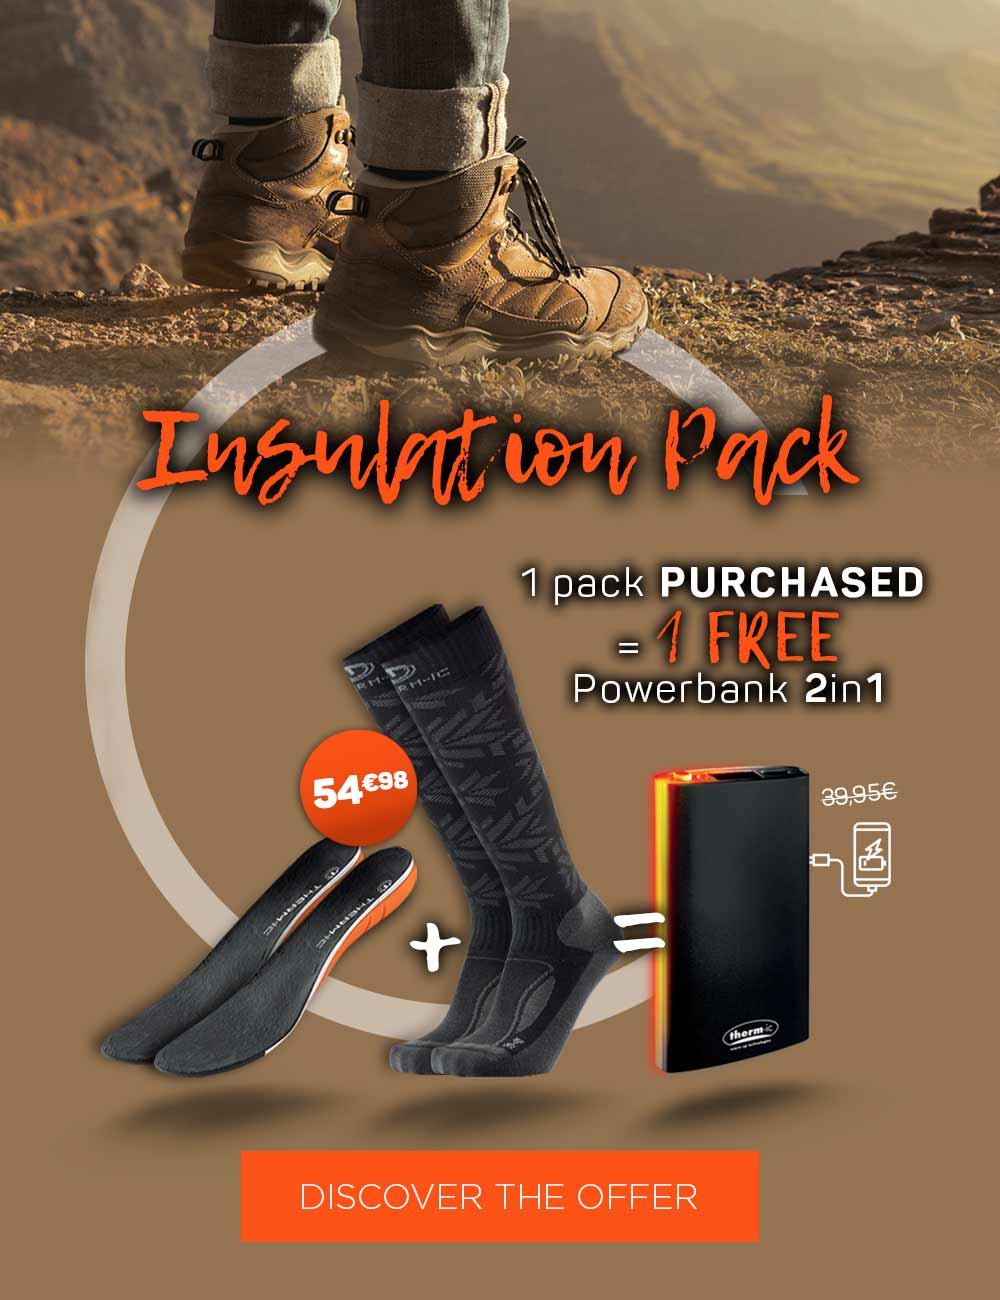 For the purchase of an Insulation Pack, your external heating battery is offered!